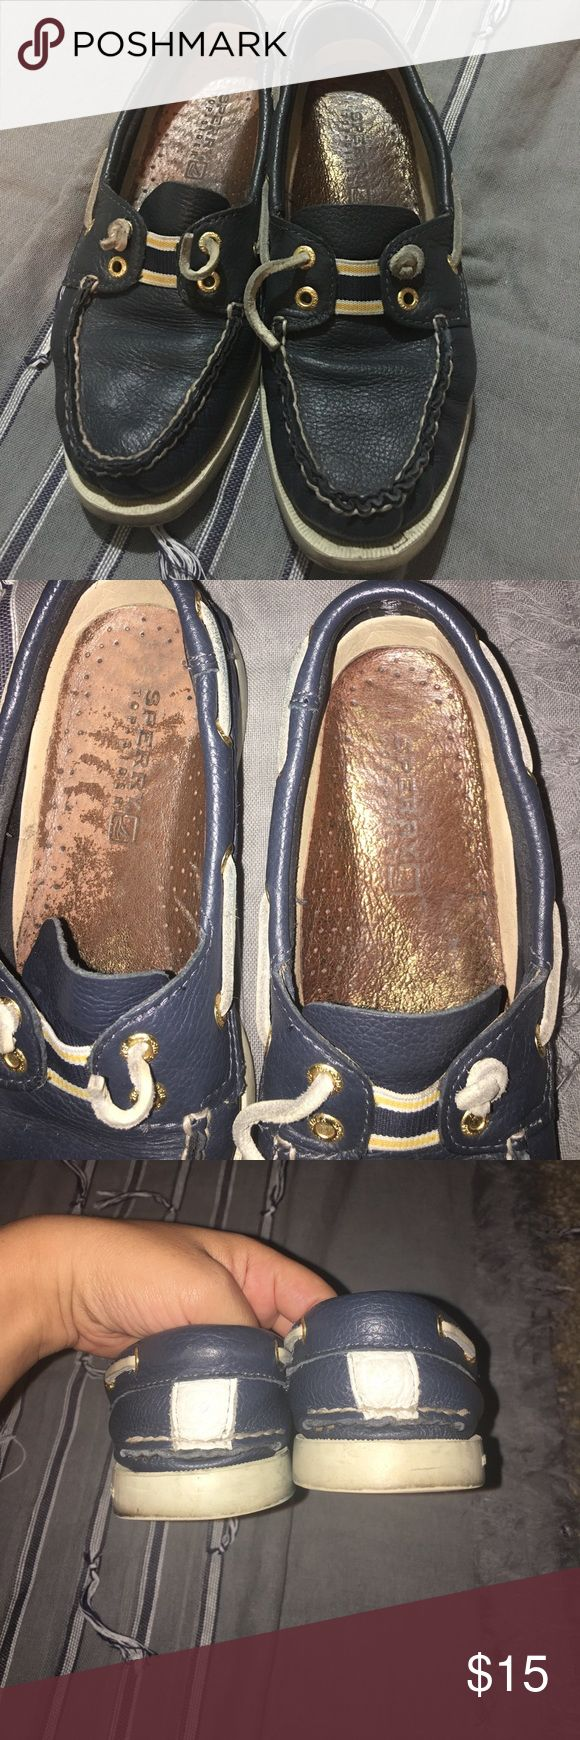 Sperry Top-Sider Used Blue Sperry Top Sider. These used to be my favorite shoes but I need to clean out my closet so I have to let them go. They're in good condition and have a lot of life left. Perfect for everyday shoes. Sperry Top-Sider Shoes Flats & Loafers